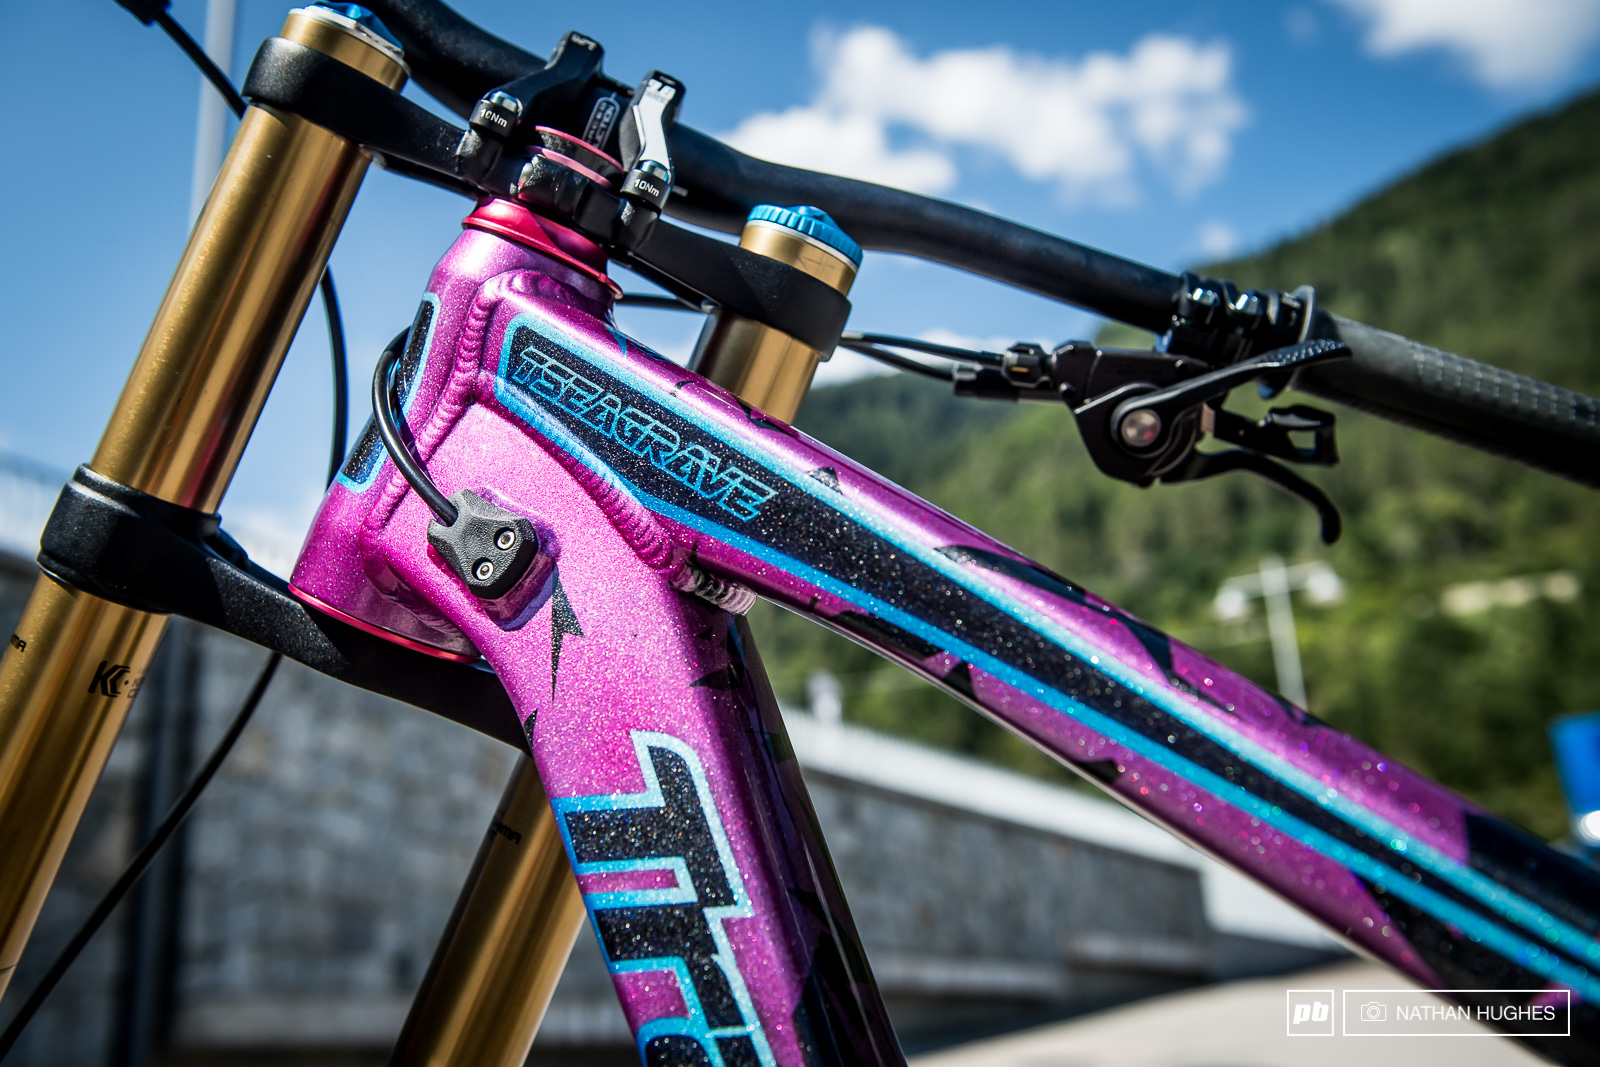 Tahnee Seagrave s Intergalactic Worlds machine painted by Tony Bauman and designed by Darren Seeds at Transition bikes.